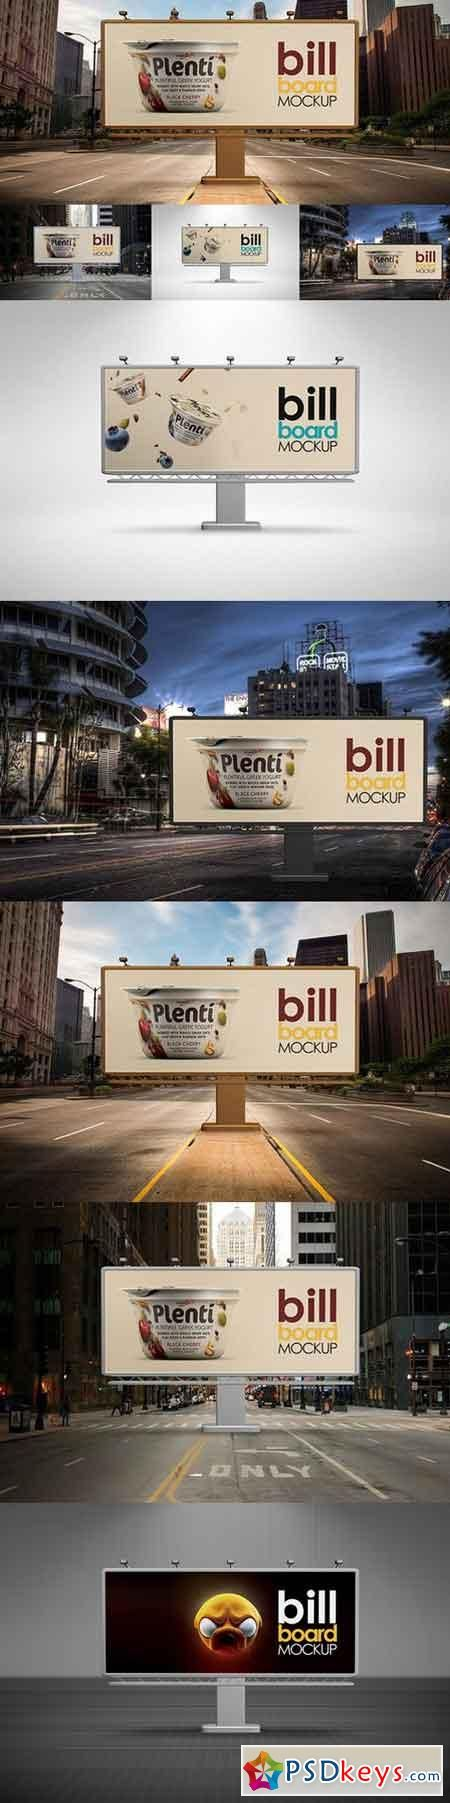 Bill Board Mock-Up 514710 | psd keys | Billboard mockup